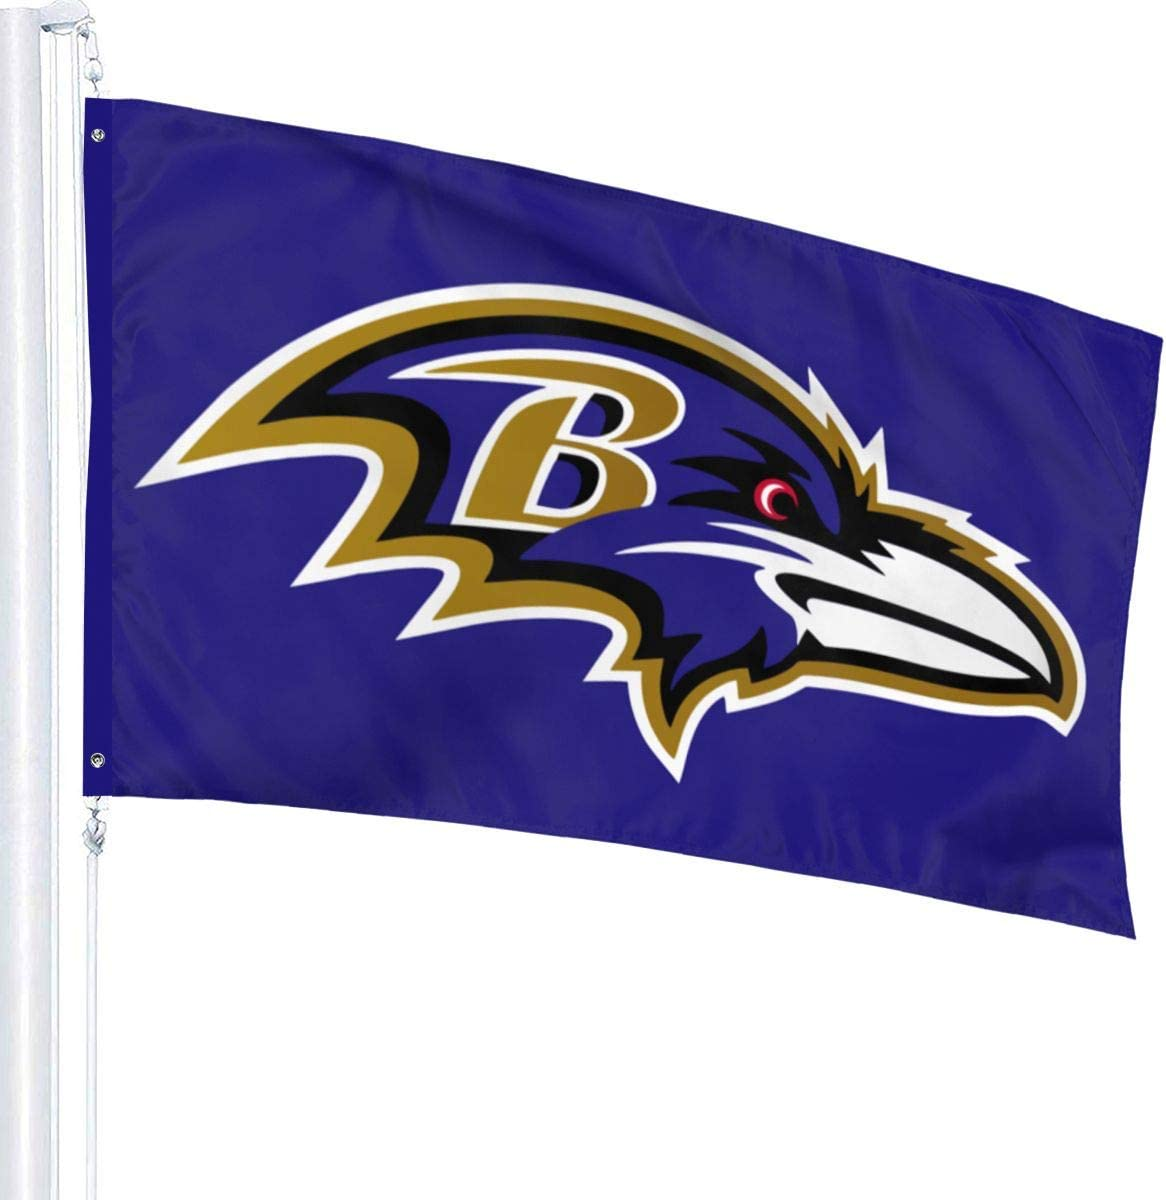 Xihe Fashion Design Polyester Flag Football Team Fans Single Sided Banner Outdoor Sports Flag 3X5 FT with Brass Grommets (Baltimore Ravens)